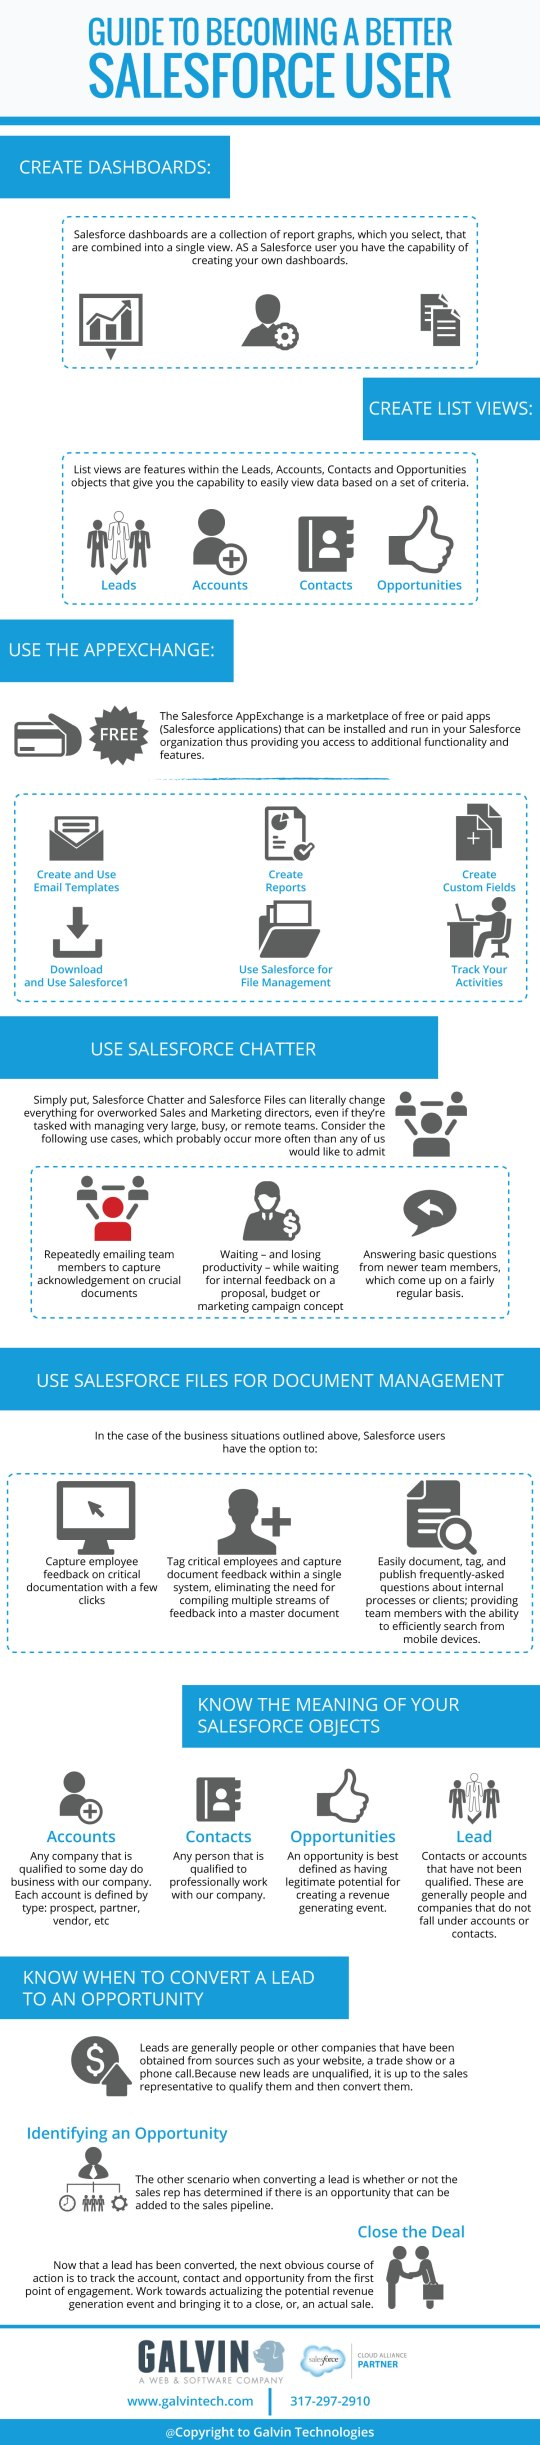 Your Guide to Becoming a Better Salesforce User